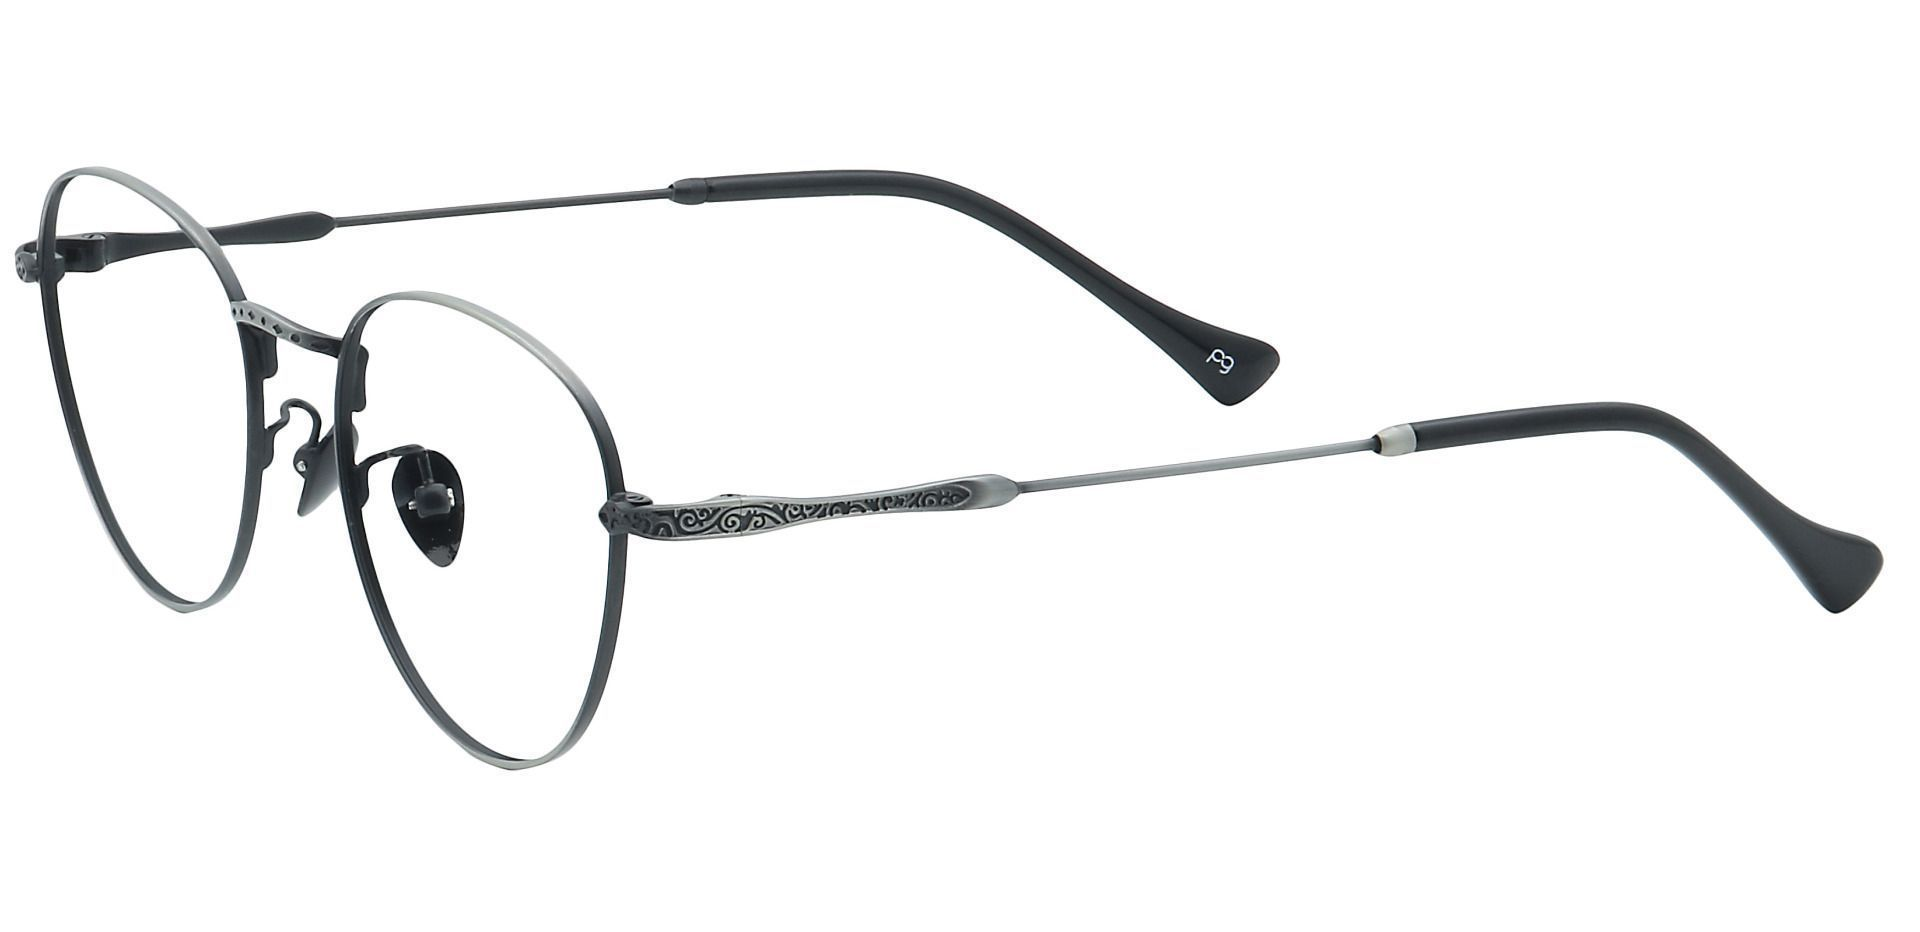 Shawn Oval Blue Light Blocking Glasses - Gray